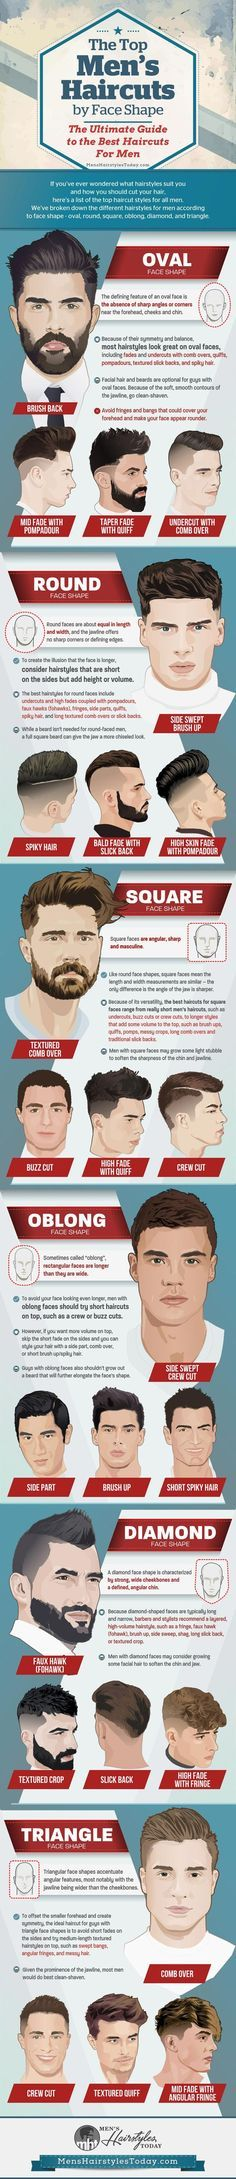 The Best Hairstyles For Men By Face Shape - The Ultimate Guide to Cool Men's Haircuts (Fades, Undercuts, Pompadours, Side Parts, Comb Overs, Quiffs, and Spiky Hair)